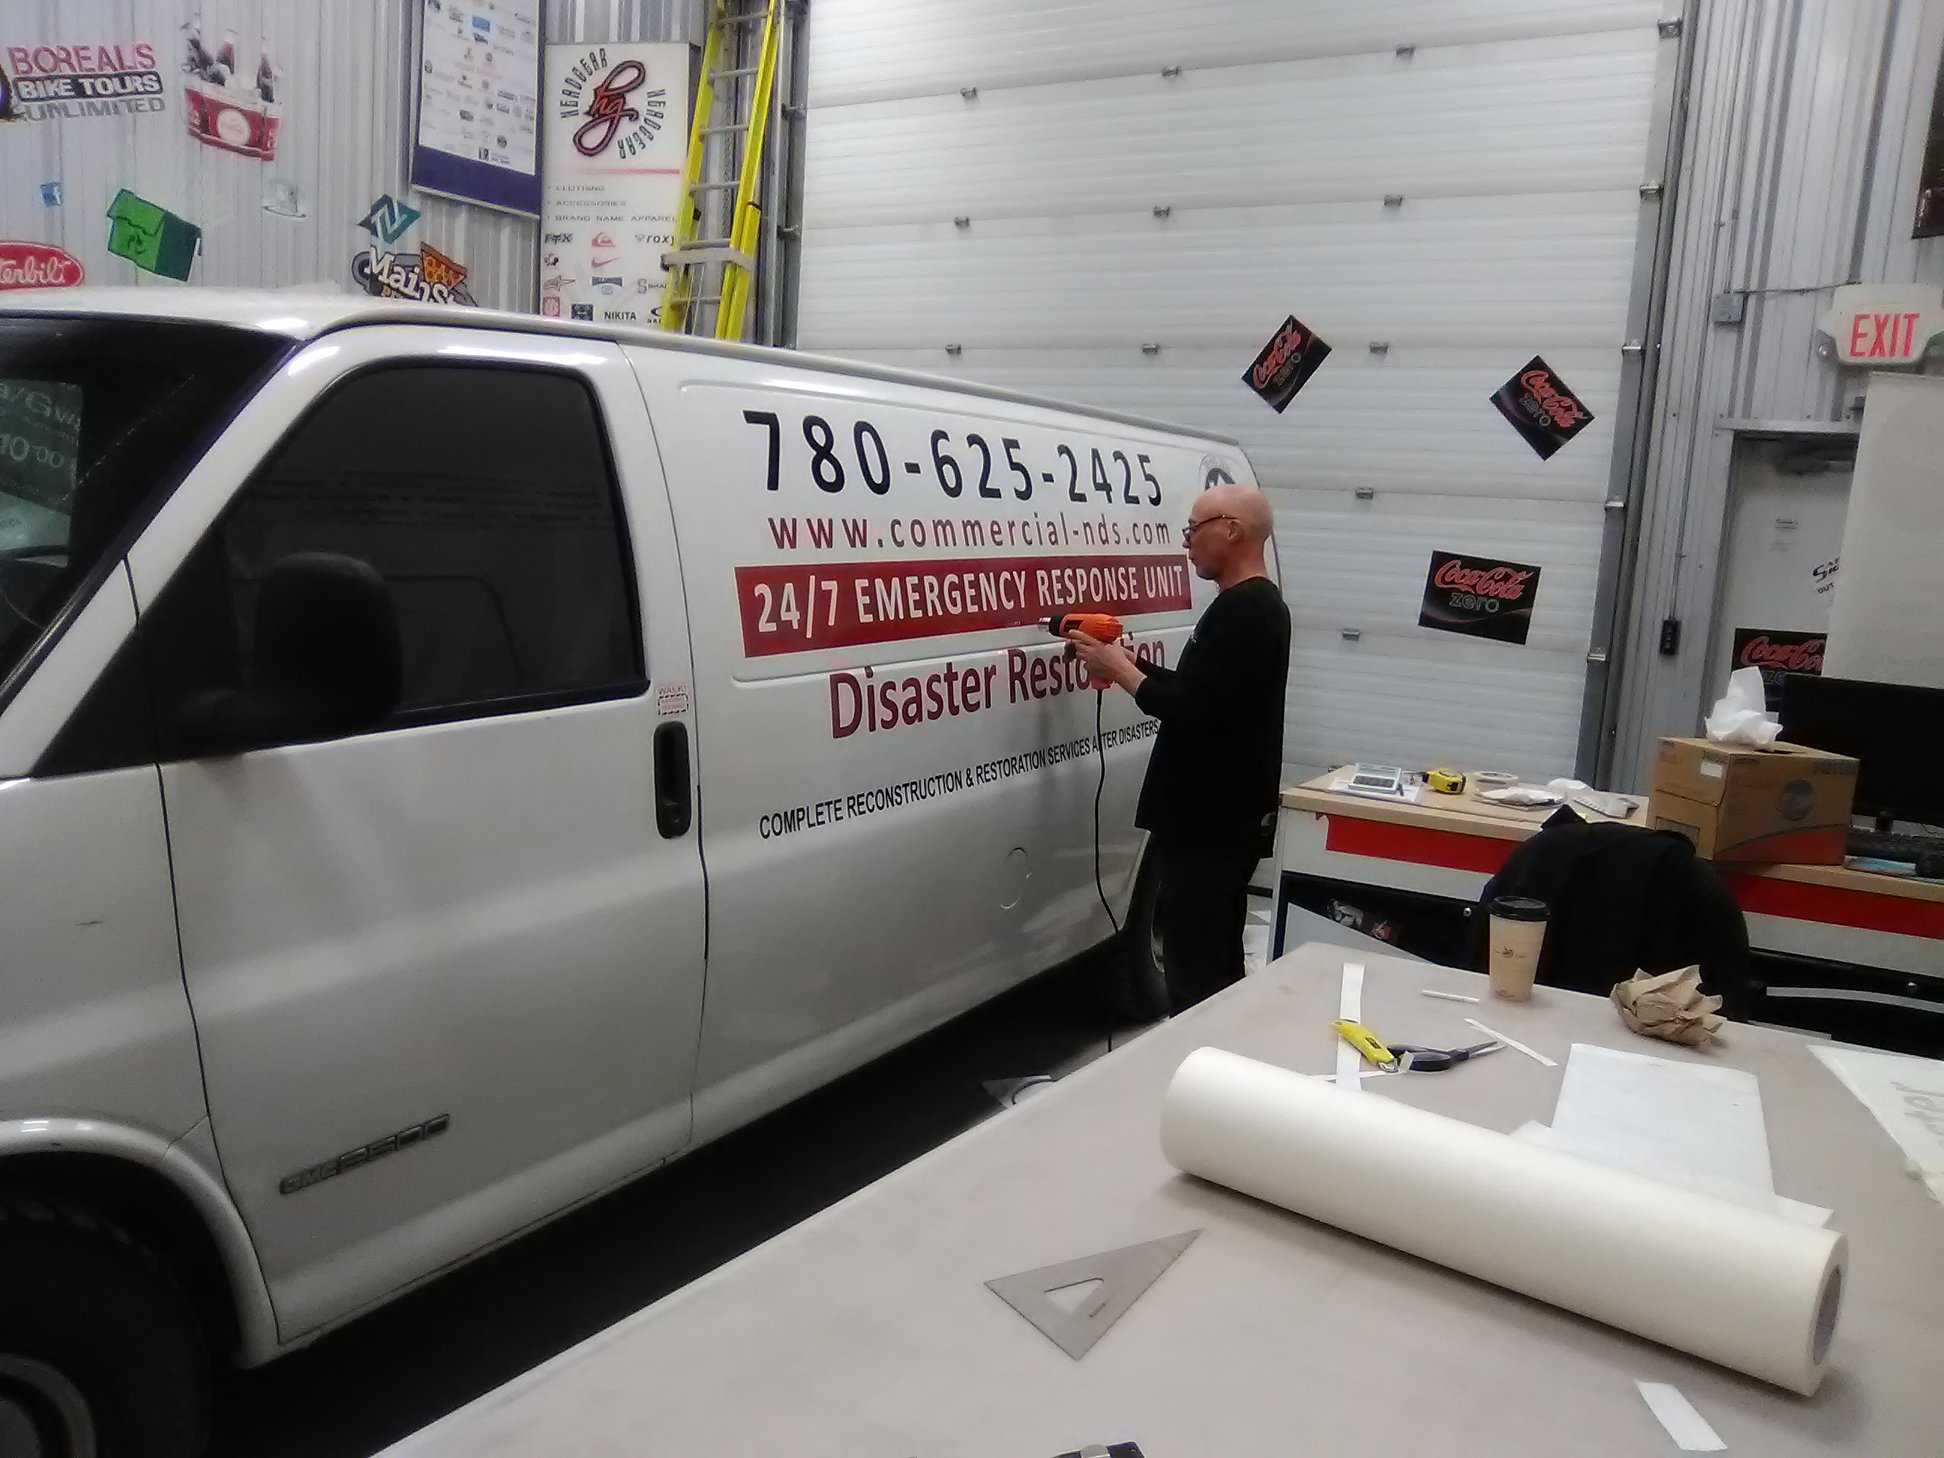 Commercial vehicle decals